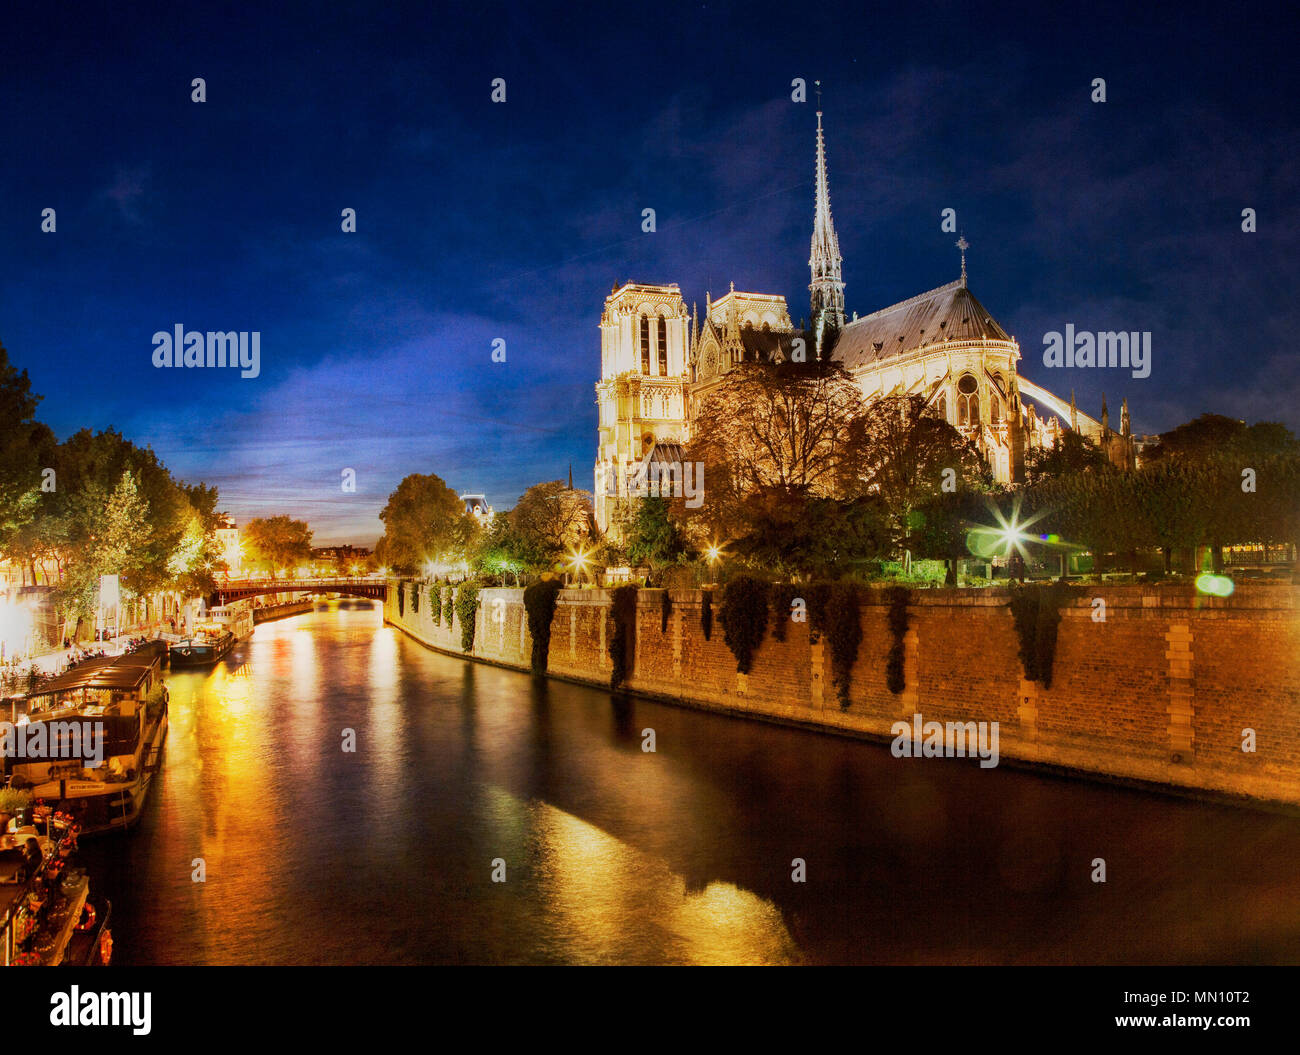 La nuit vient plus de Notre Dame le long de la Seine. Paris, France. Photo Stock